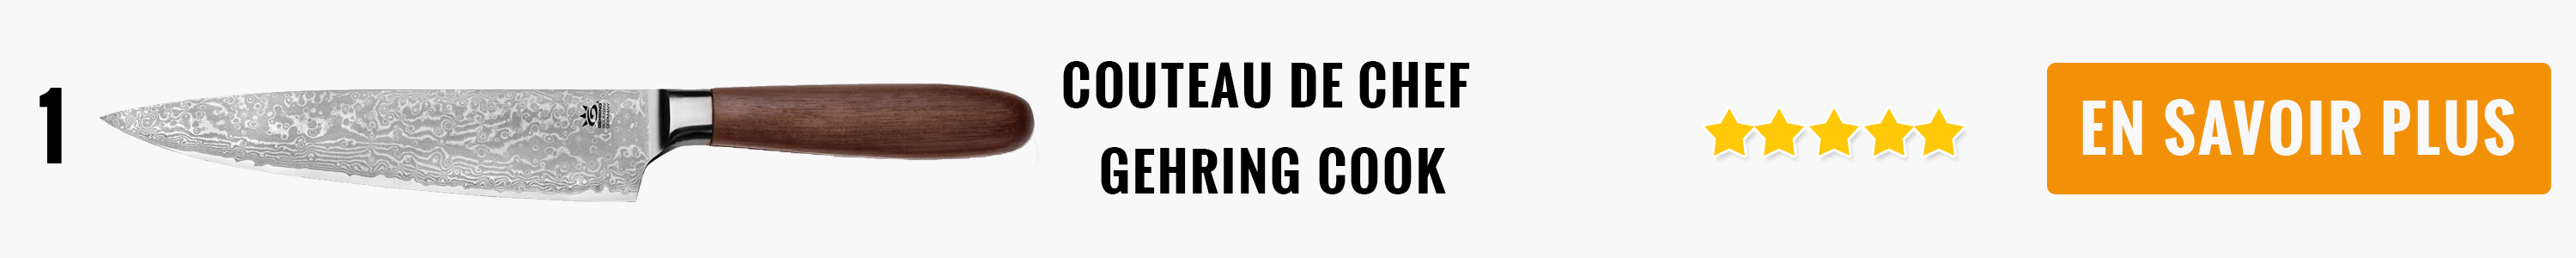 Couteau de chef Gehring Cook